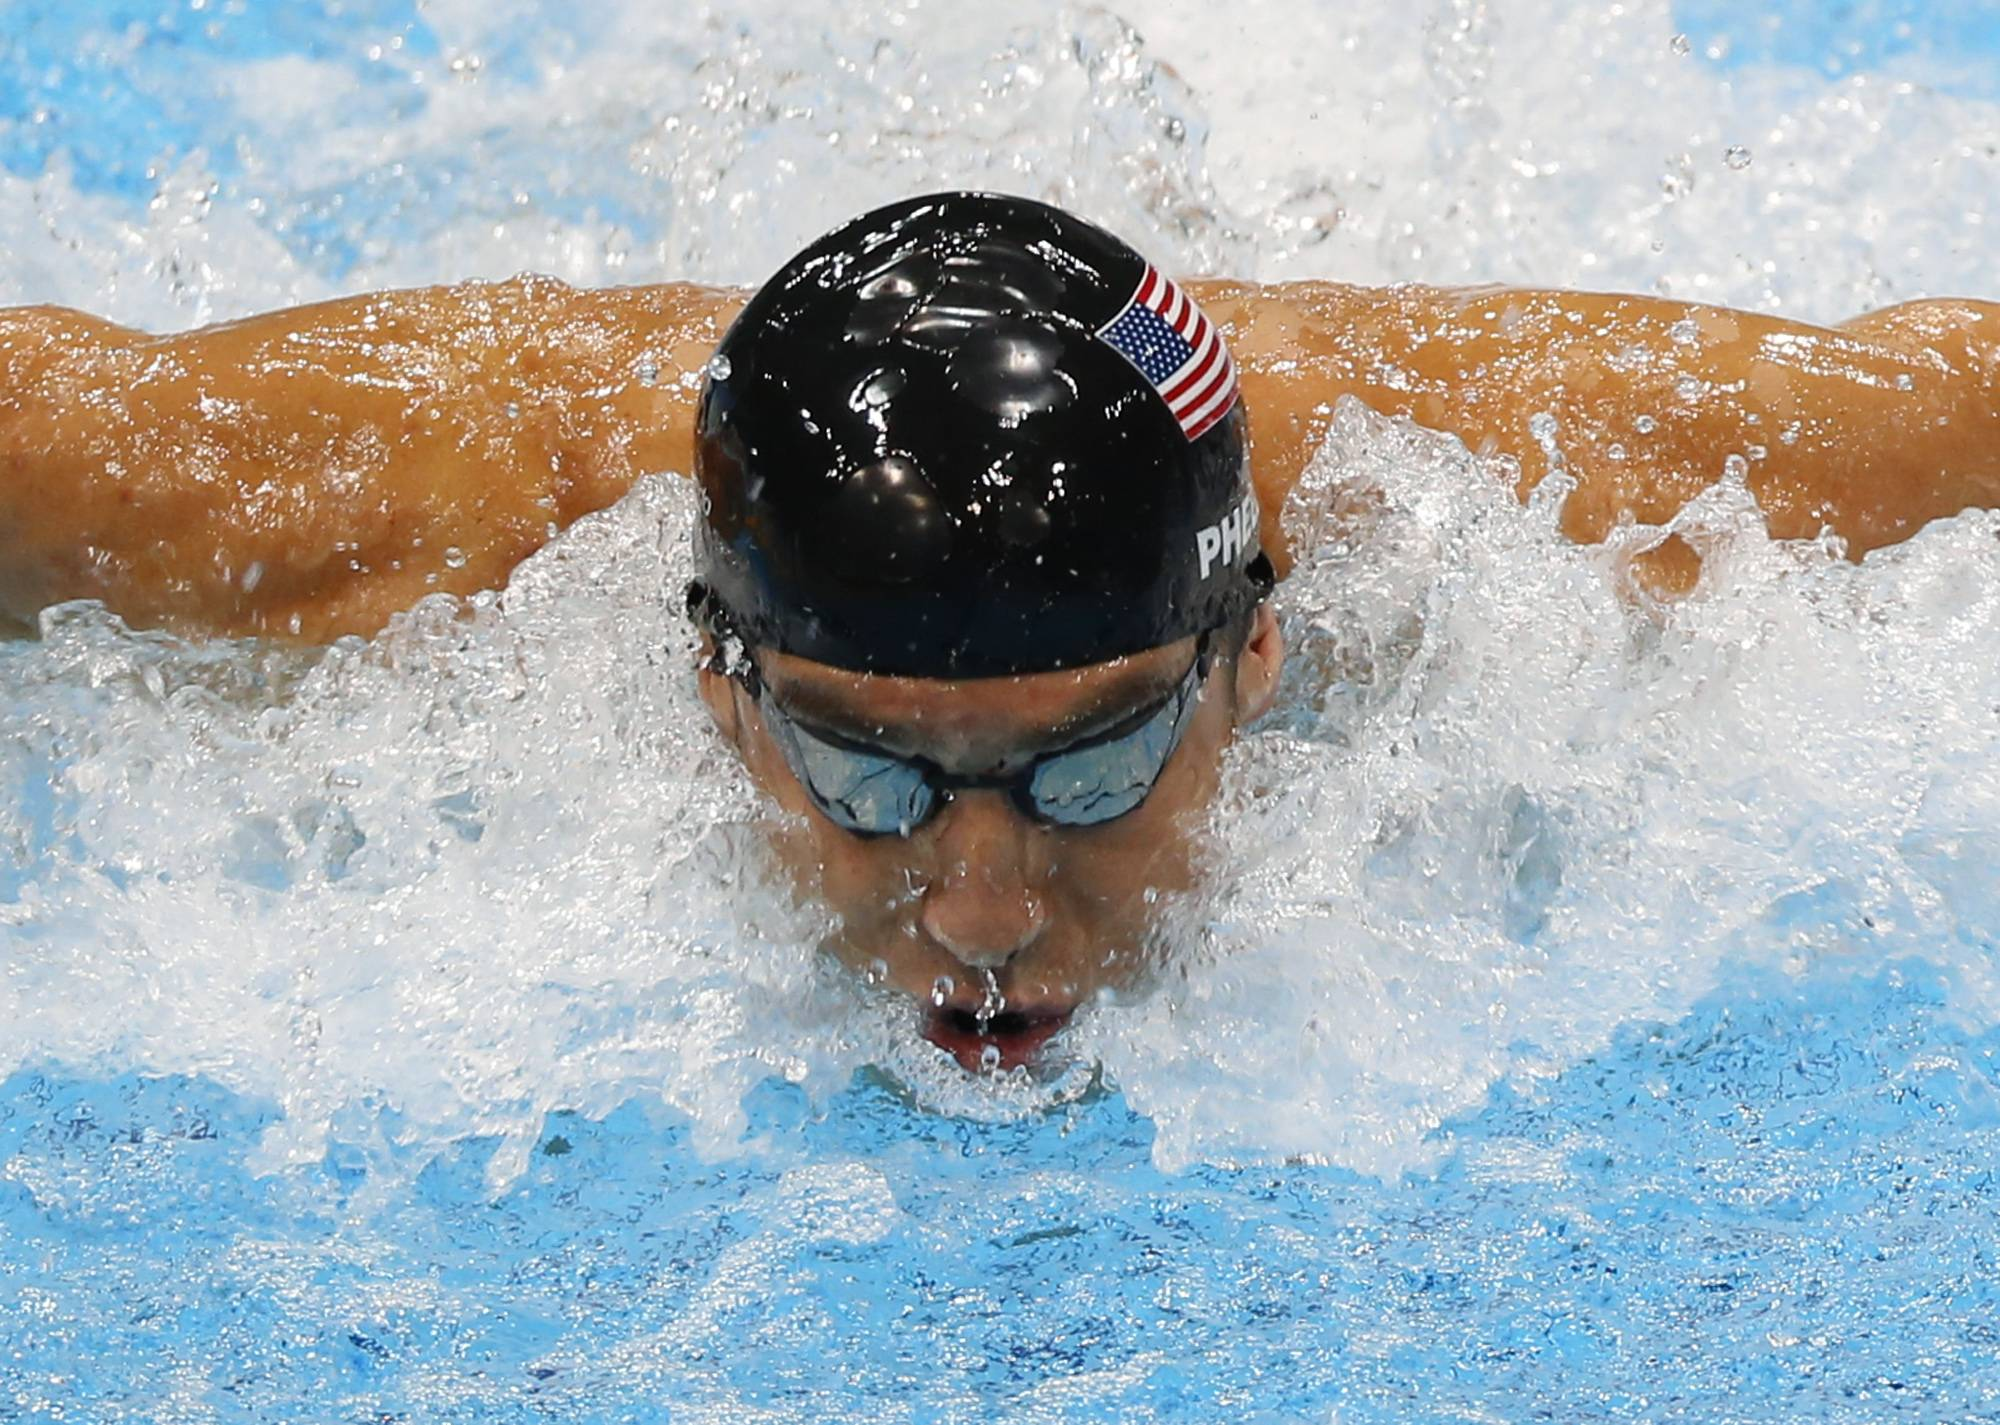 Michael Phelps is coming out of retirement, the first step toward possibly swimming at the 2016 Rio Olympics. Bob Bowman, the swimmer's longtime coach, told The Associated Press on Mondaythat Phelps is entered in three events -- the 50- and 100-meter freestyles and the 100 butterfly at his first meet since the 2012 London Games at a meet in Mesa, Ariz., on April 24-26.